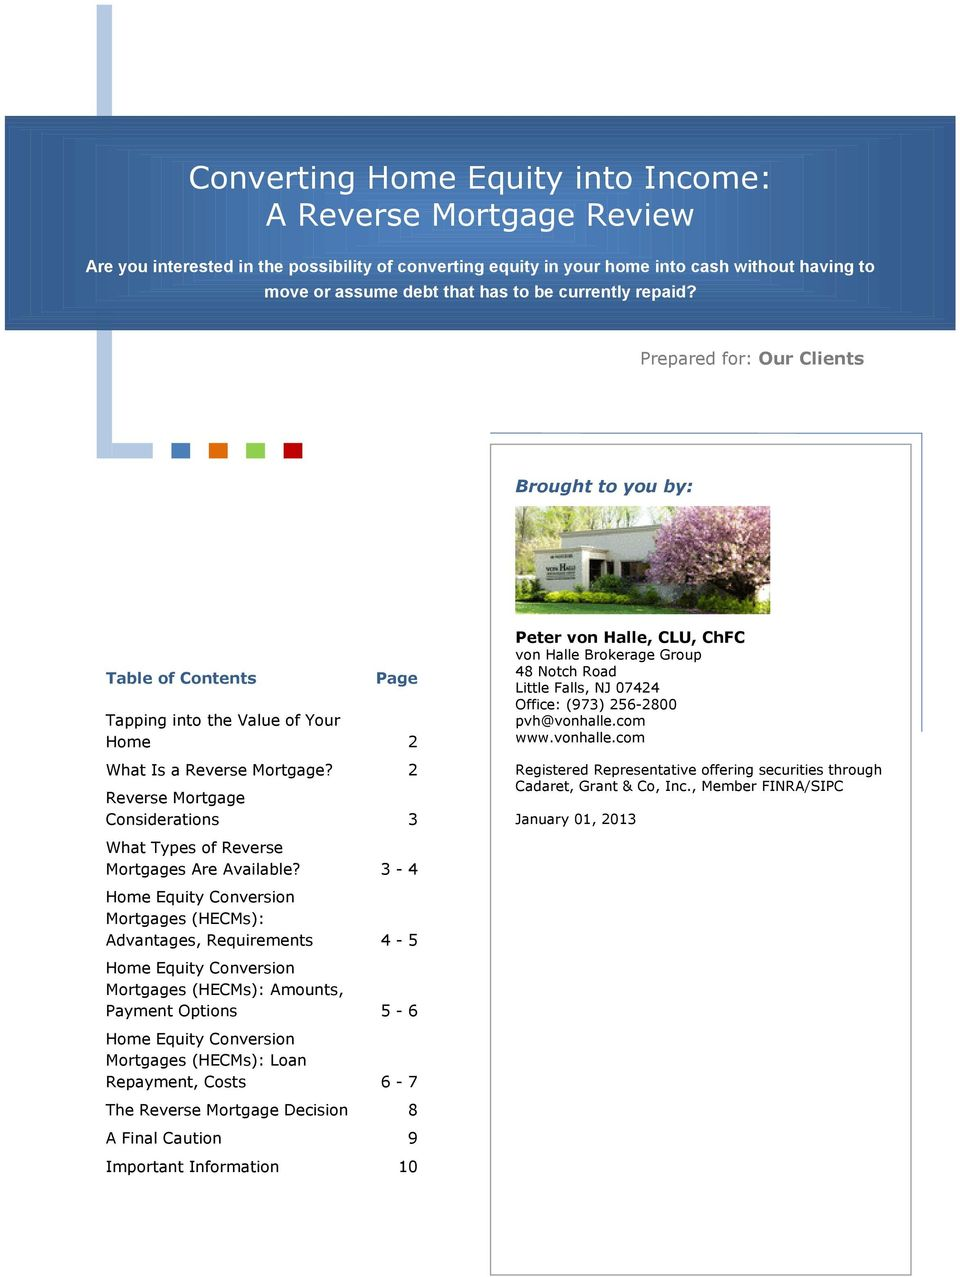 2 Reverse Mortgage Considerations 3 What Types of Reverse Mortgages Are Available?